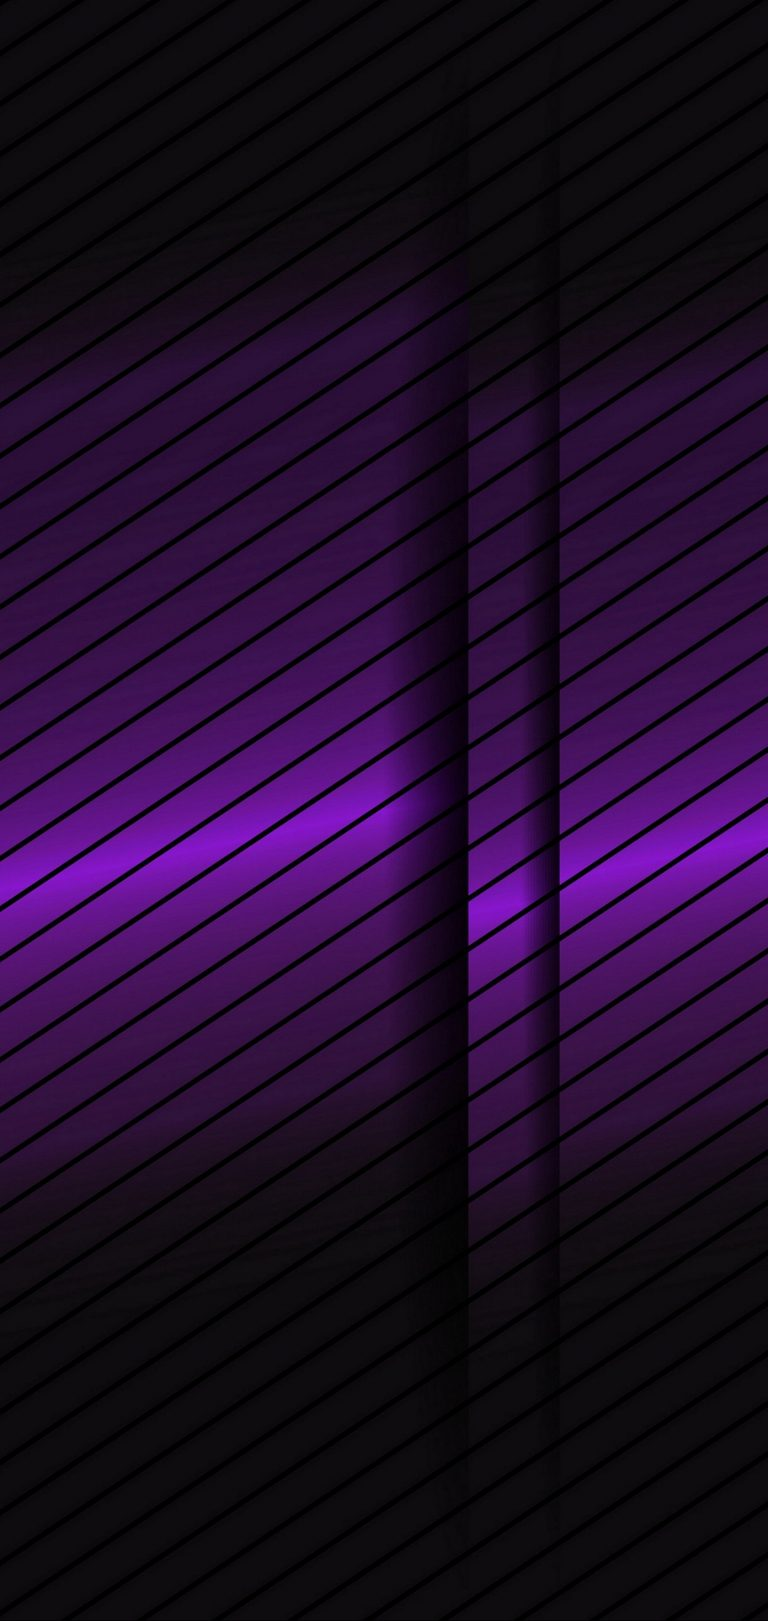 Abstraction Line Purple Wallpaper 1440x3040 768x1621